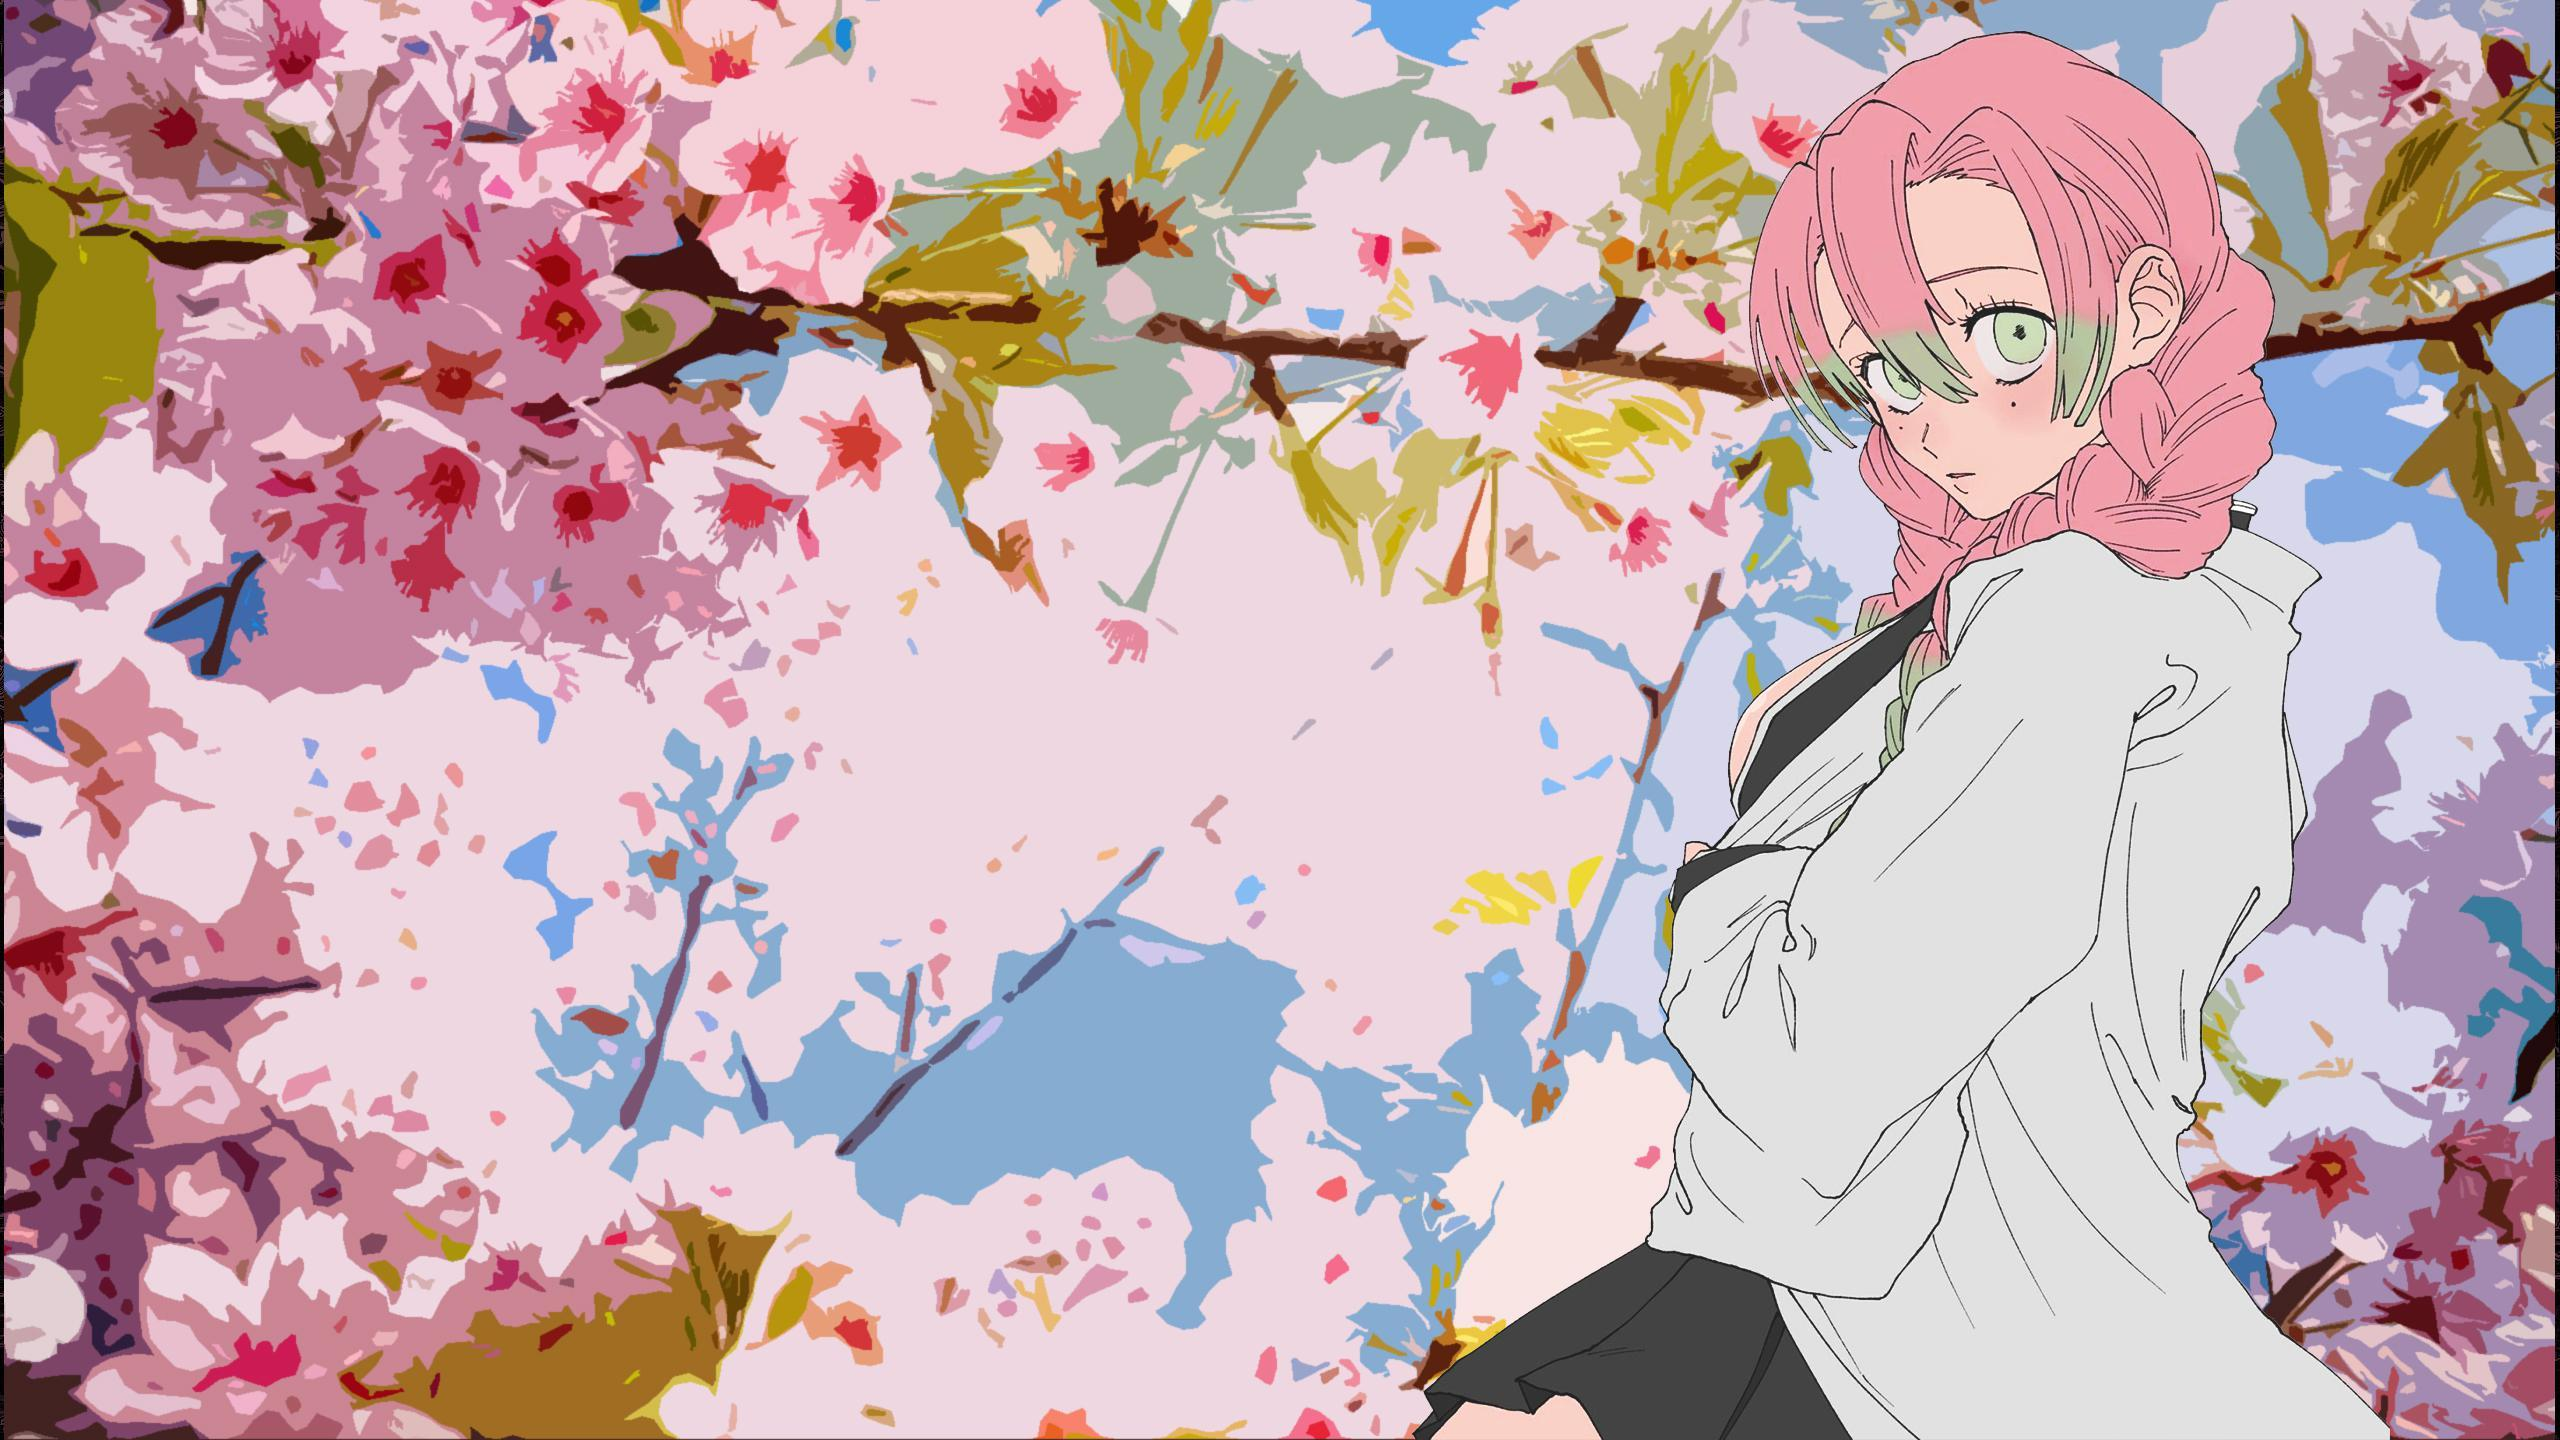 Mitsuri Kanroji Hd Wallpapers Wallpaper Cave Browse millions of popular anime wallpapers and ringtones on zedge and personalize your phone to suit you. mitsuri kanroji hd wallpapers